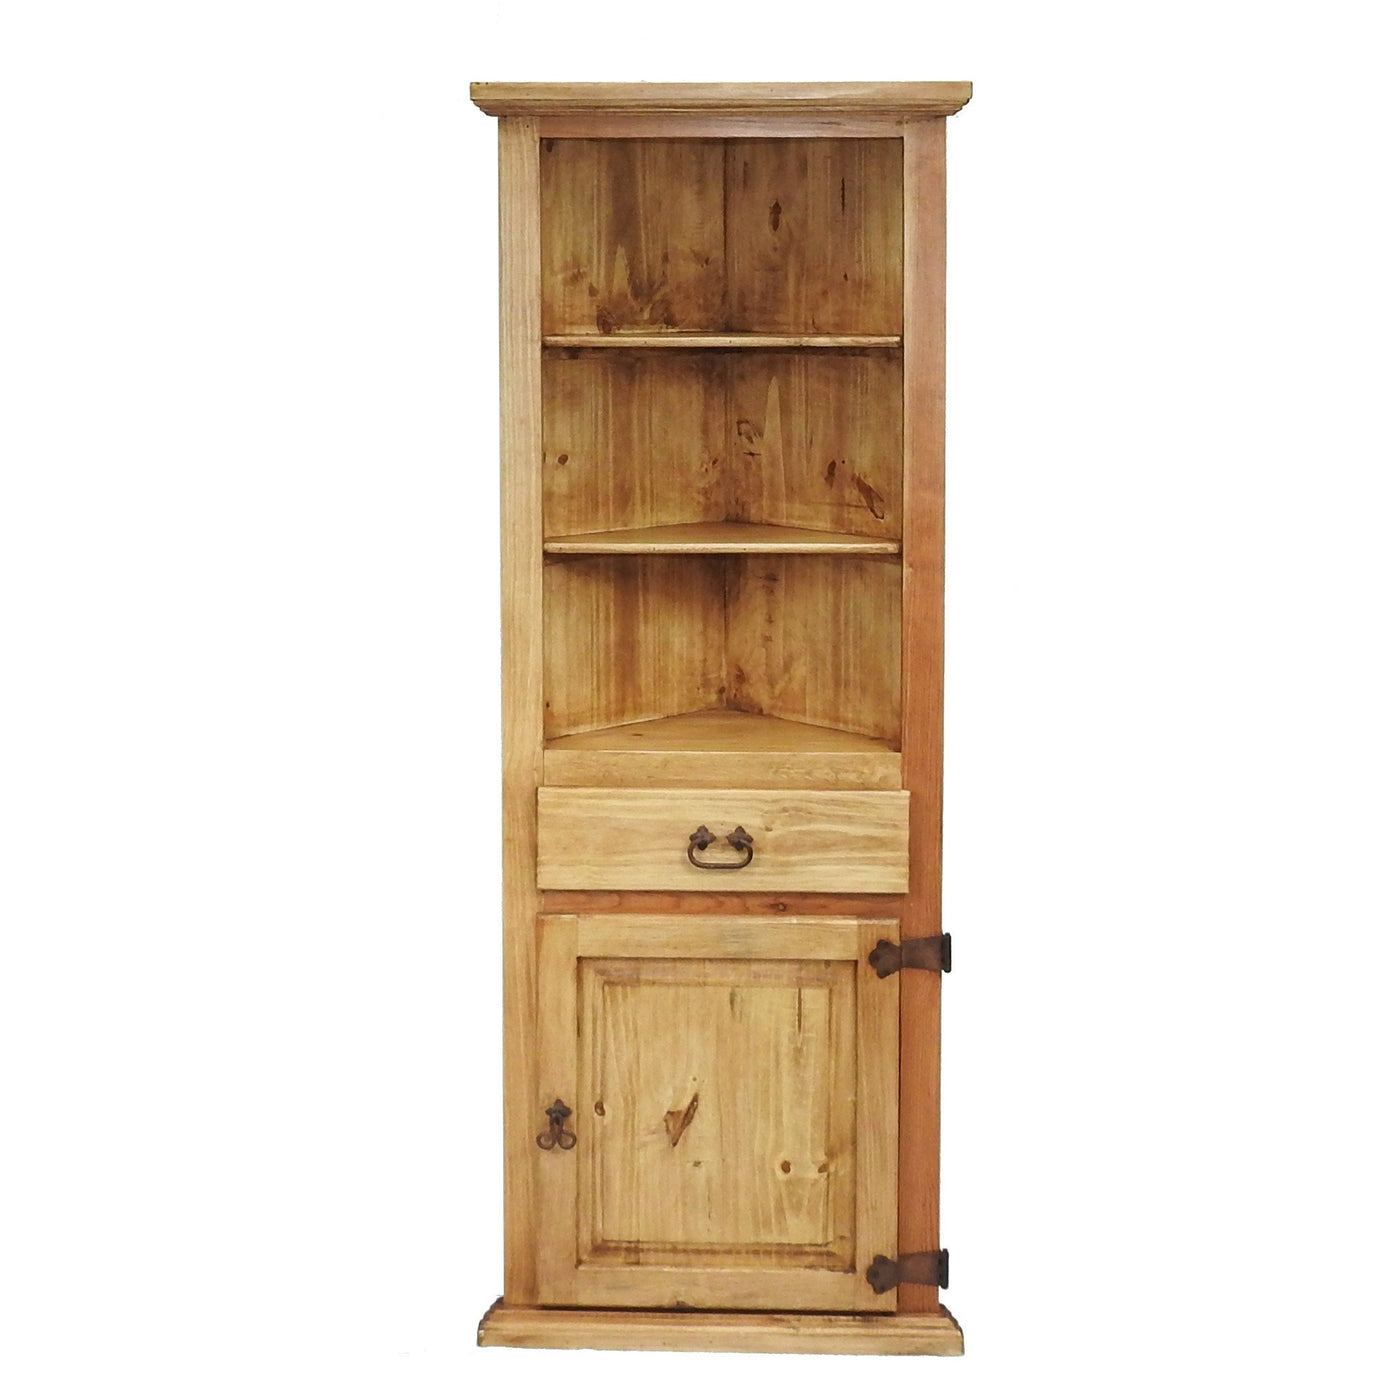 Traditional Small Corner Hutch Rustics For Less